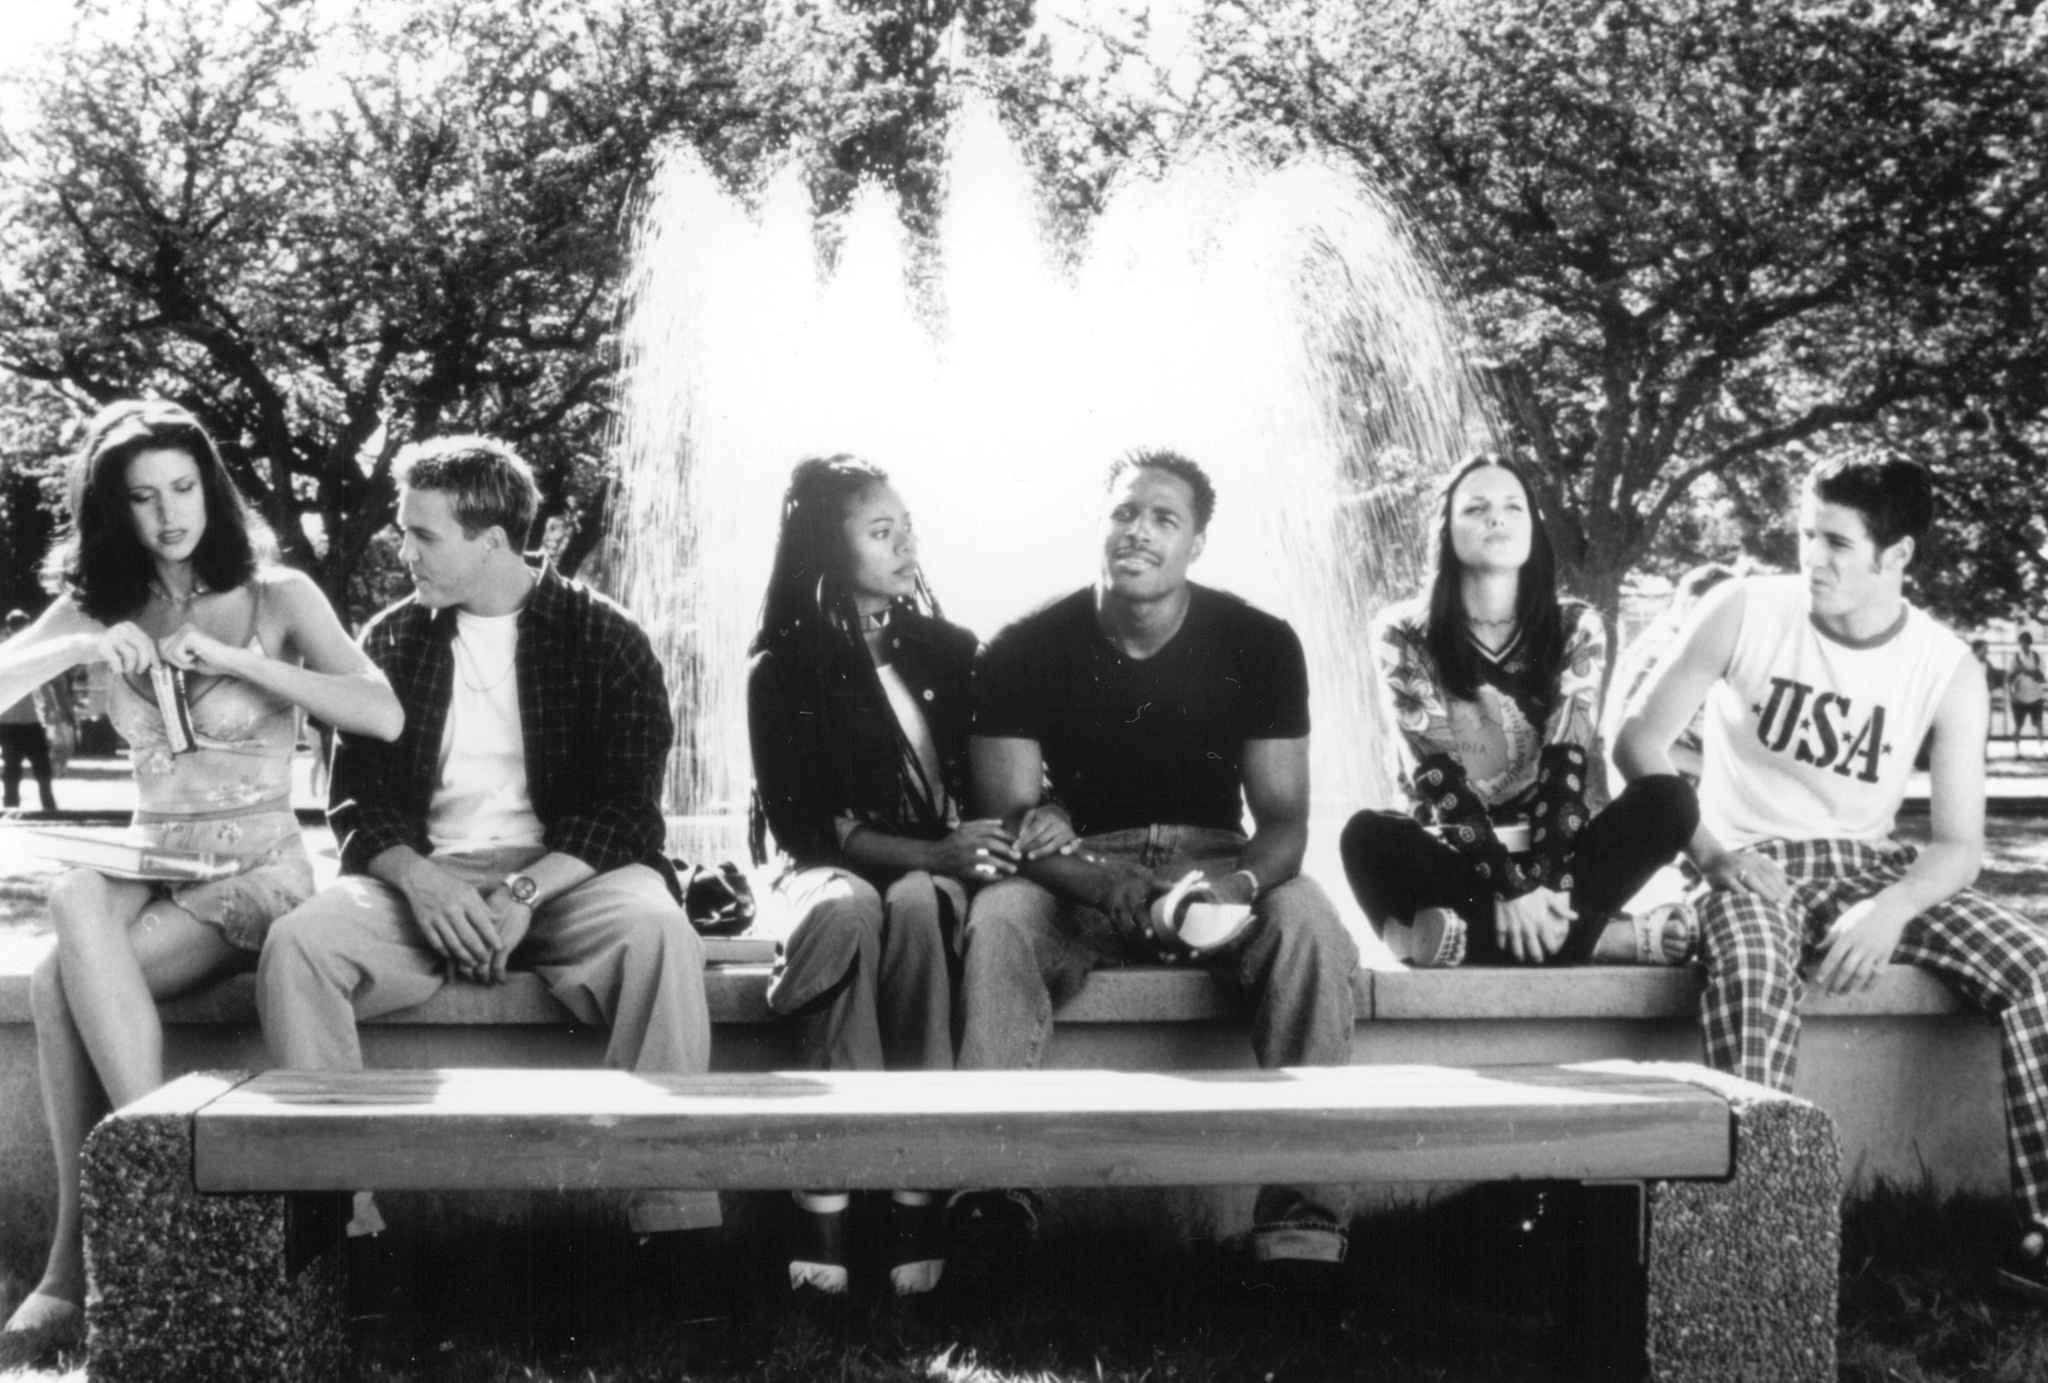 Shannon Elizabeth, Jon Abrahams, Anna Faris, Regina Hall, Lochlyn Munro, and Shawn Wayans in Scary Movie (2000)